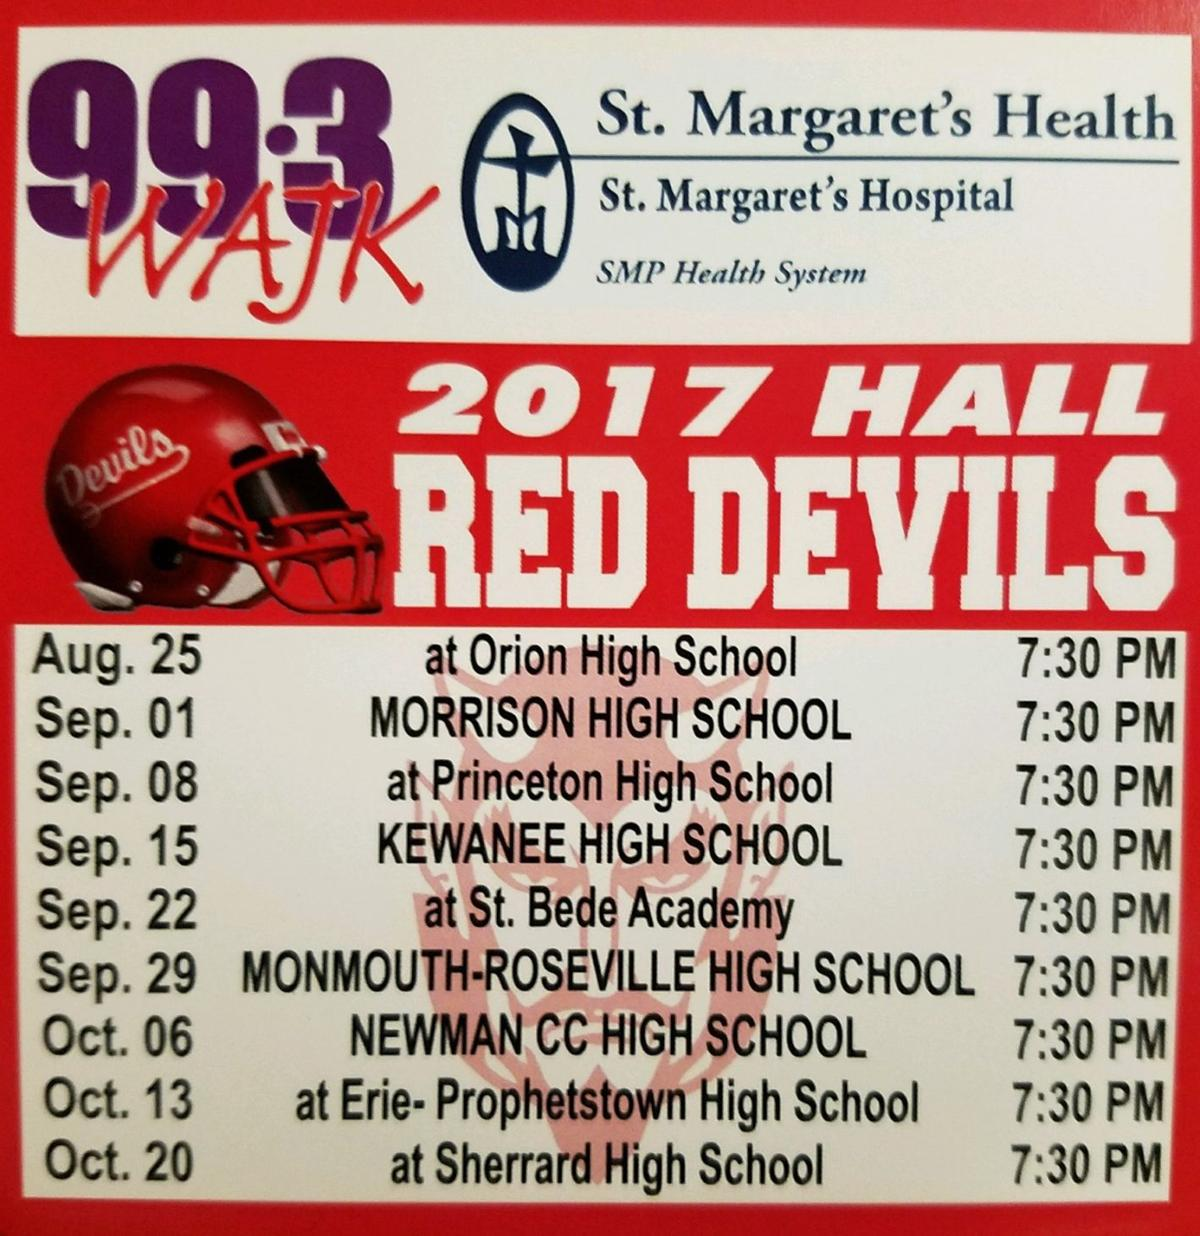 Hall Football Schedule Magnets